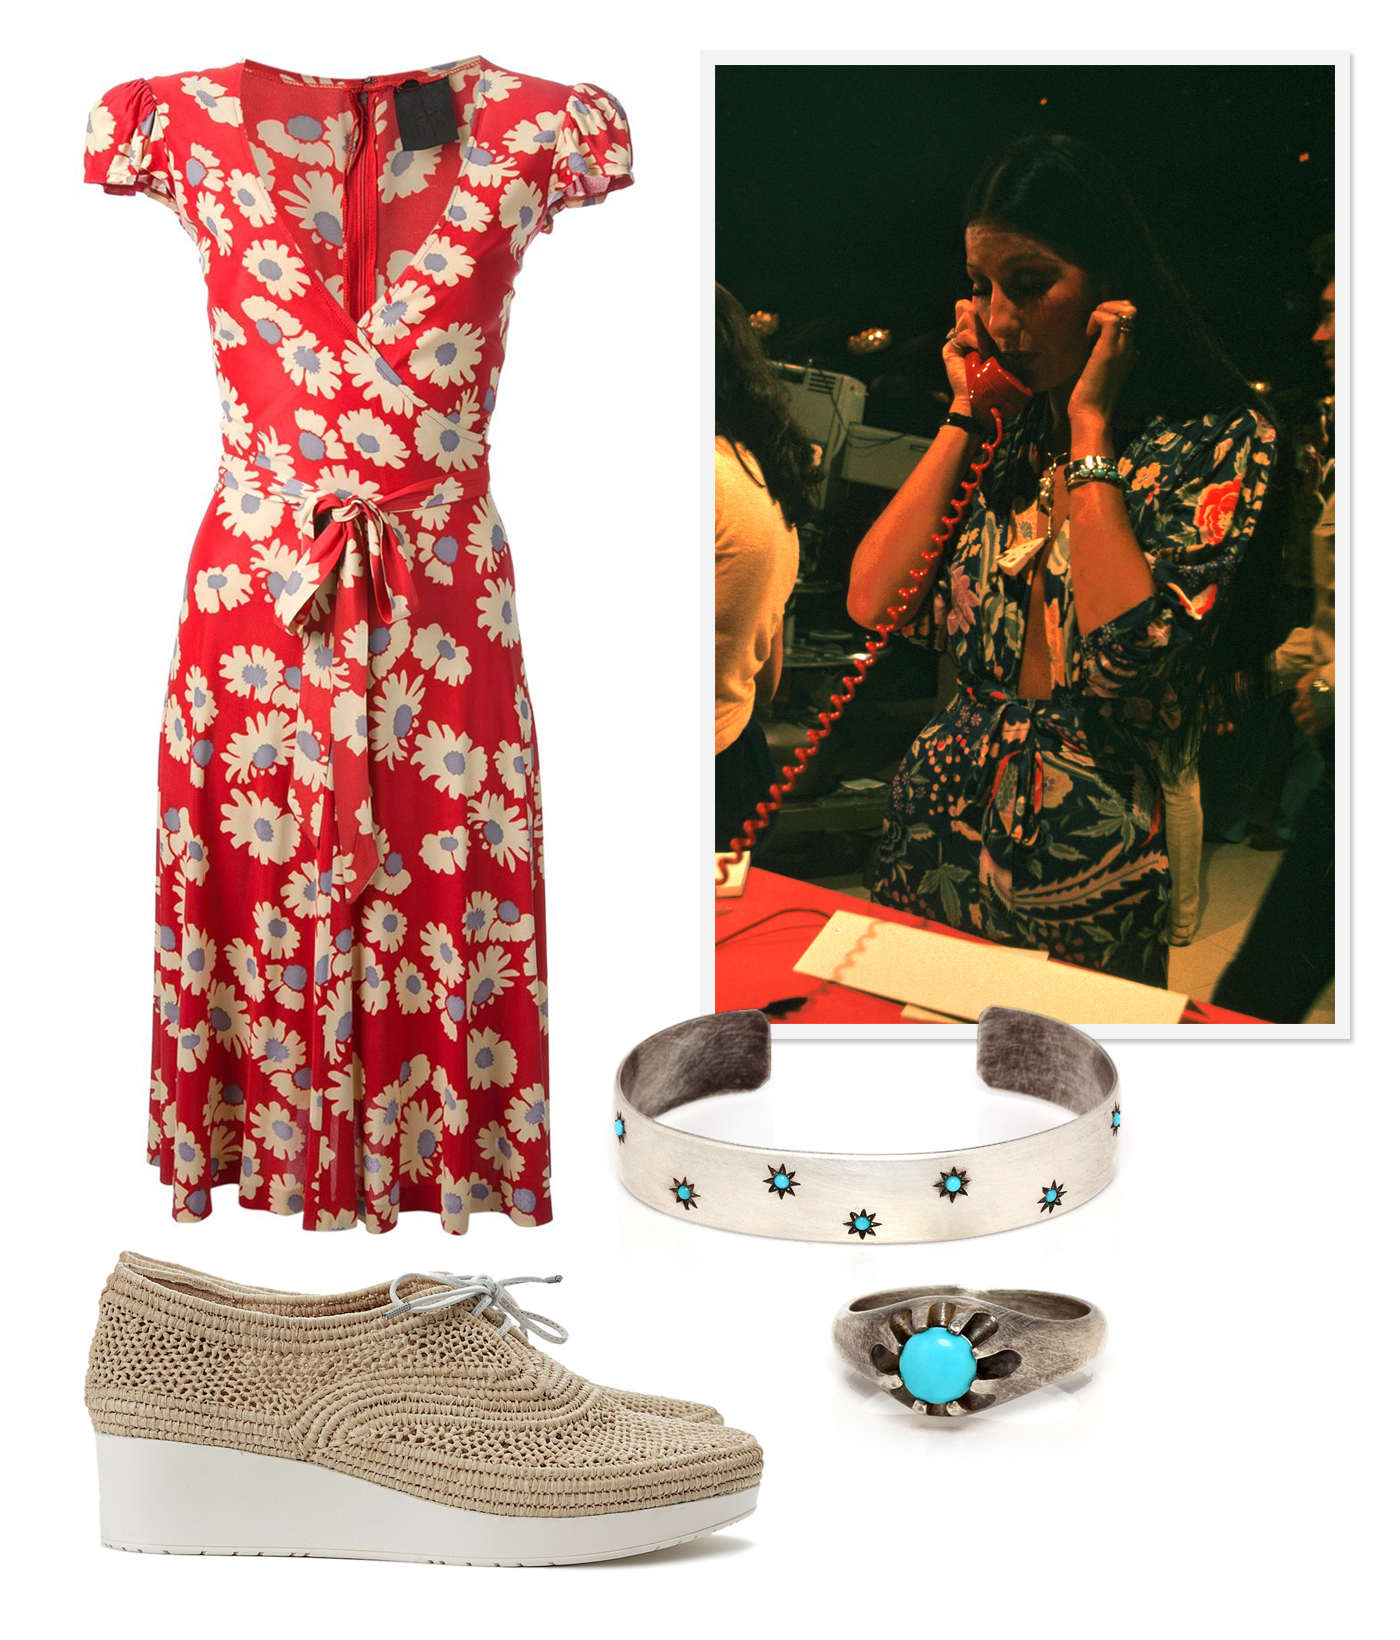 coachella-outfits-music-festival-style-03.jpg